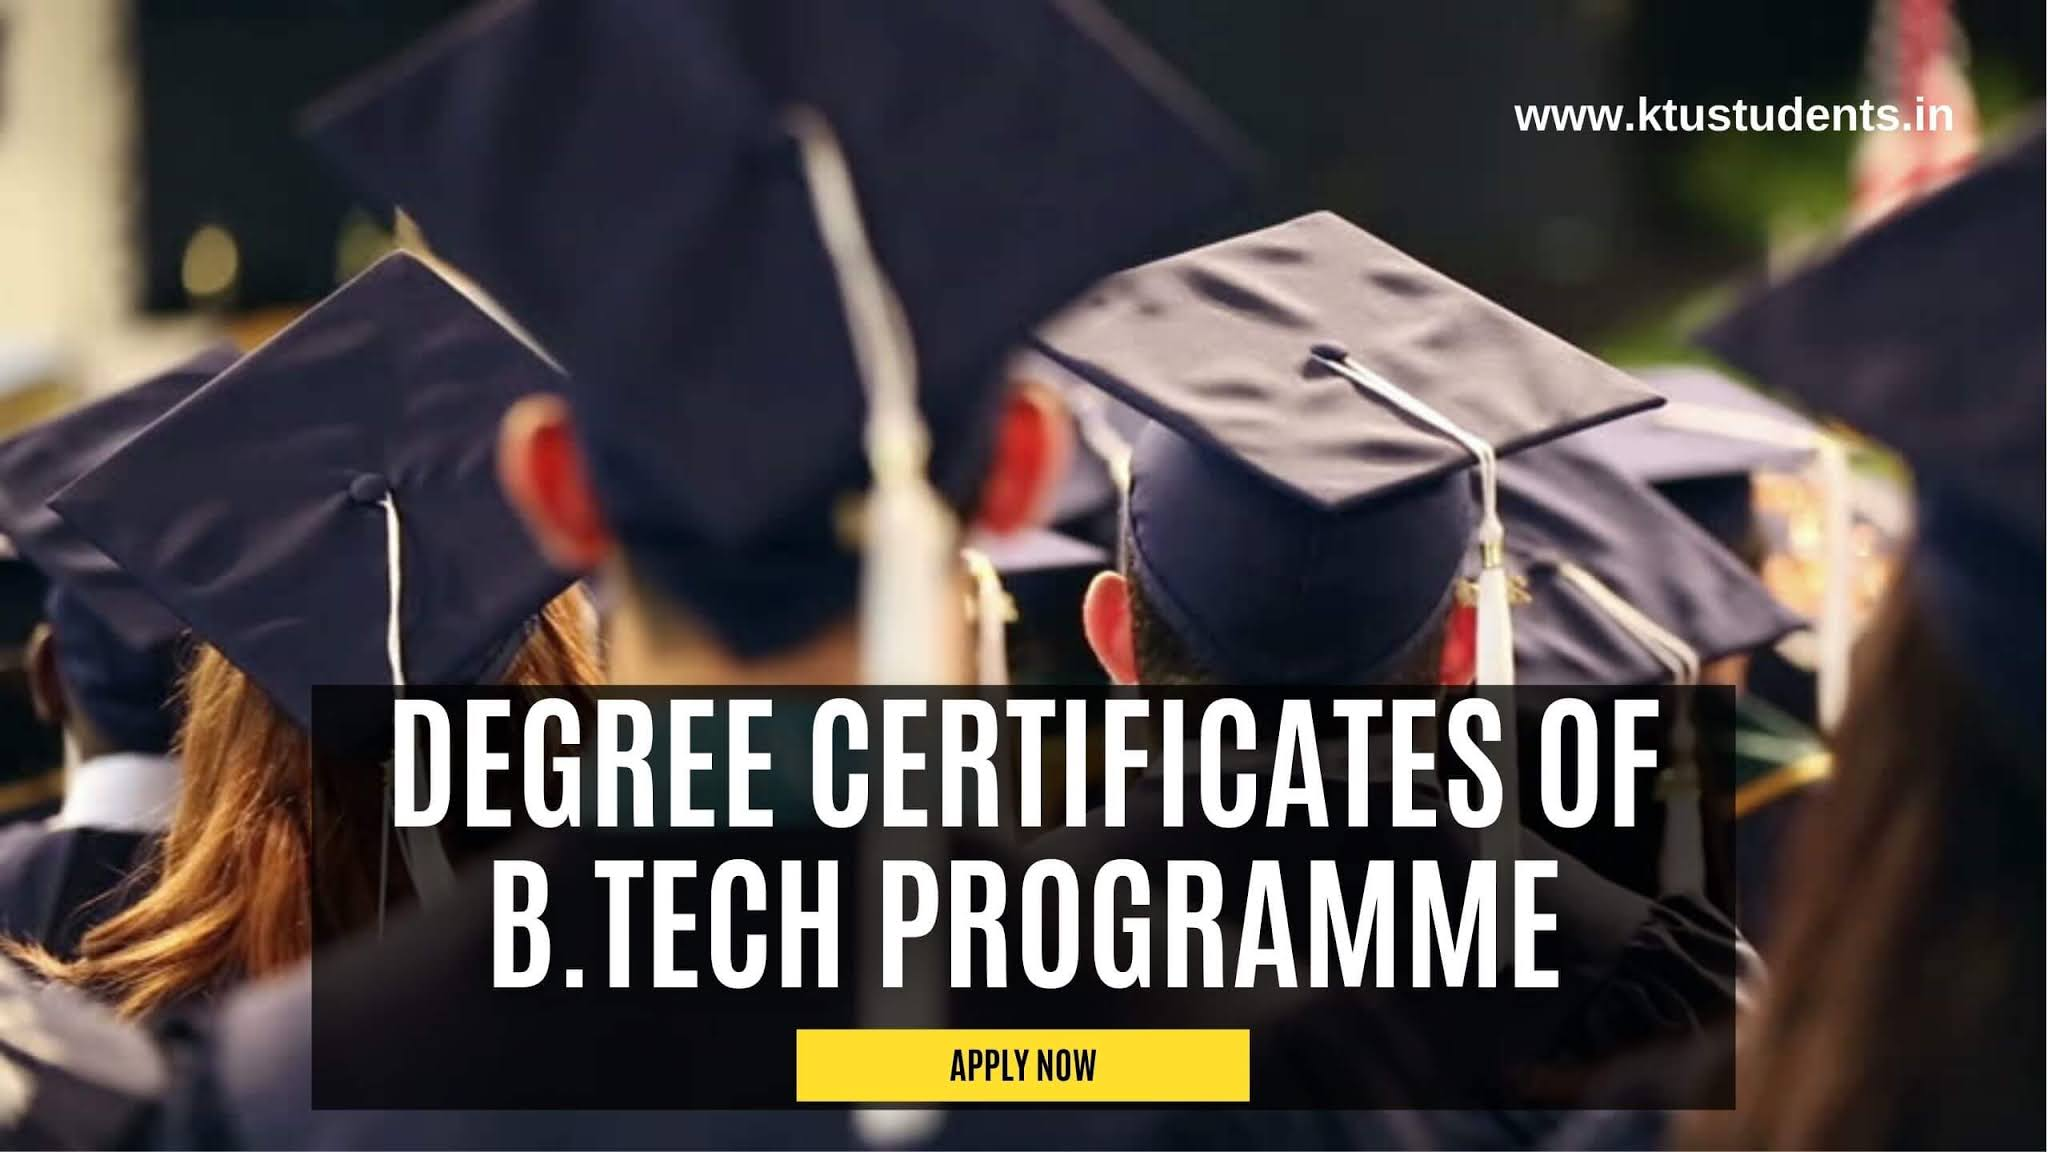 ktu engineering degree certificate 2021